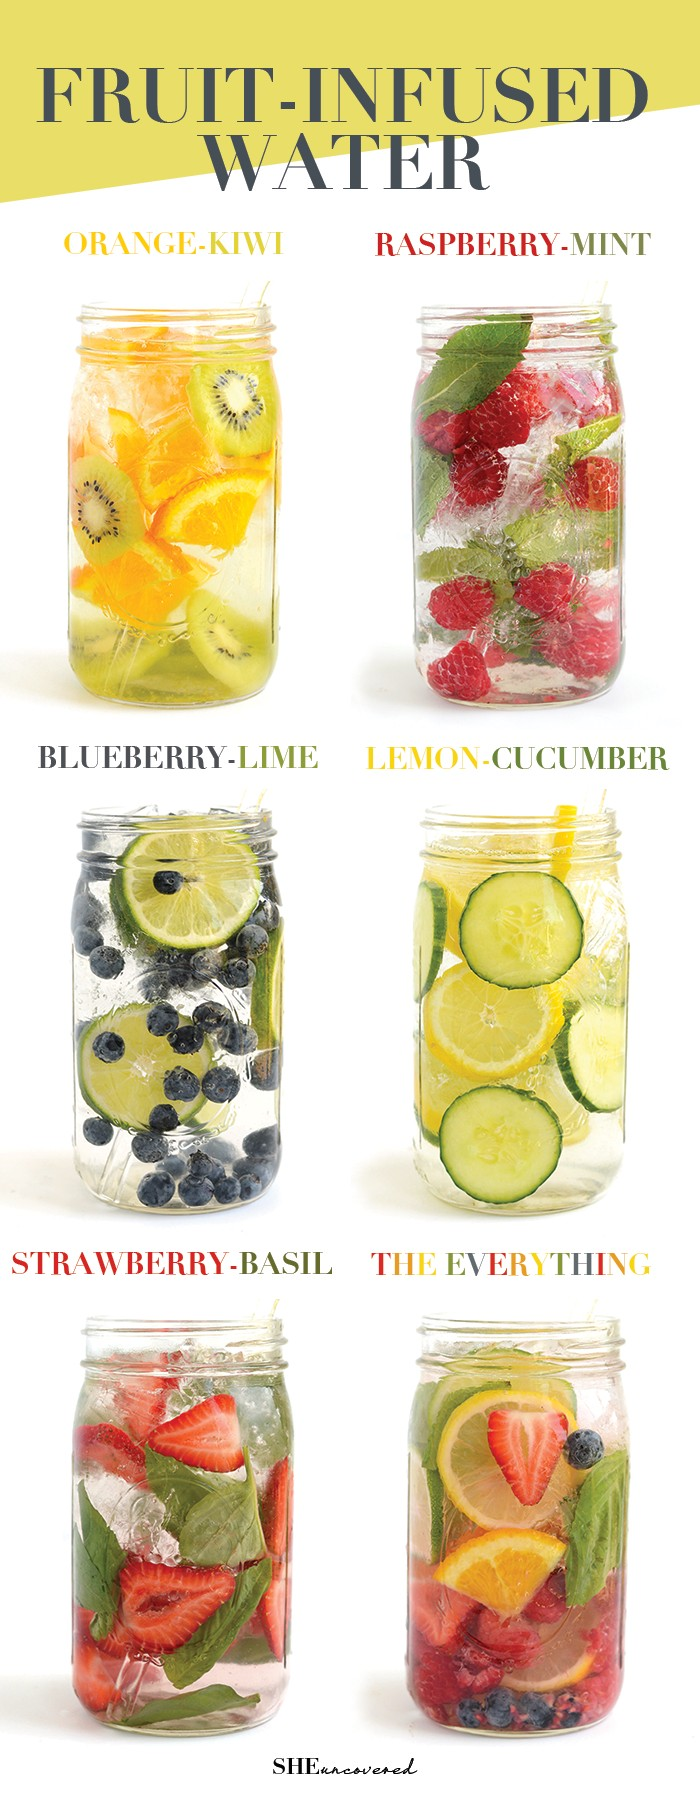 Does drinking lemon infused water help lose weight